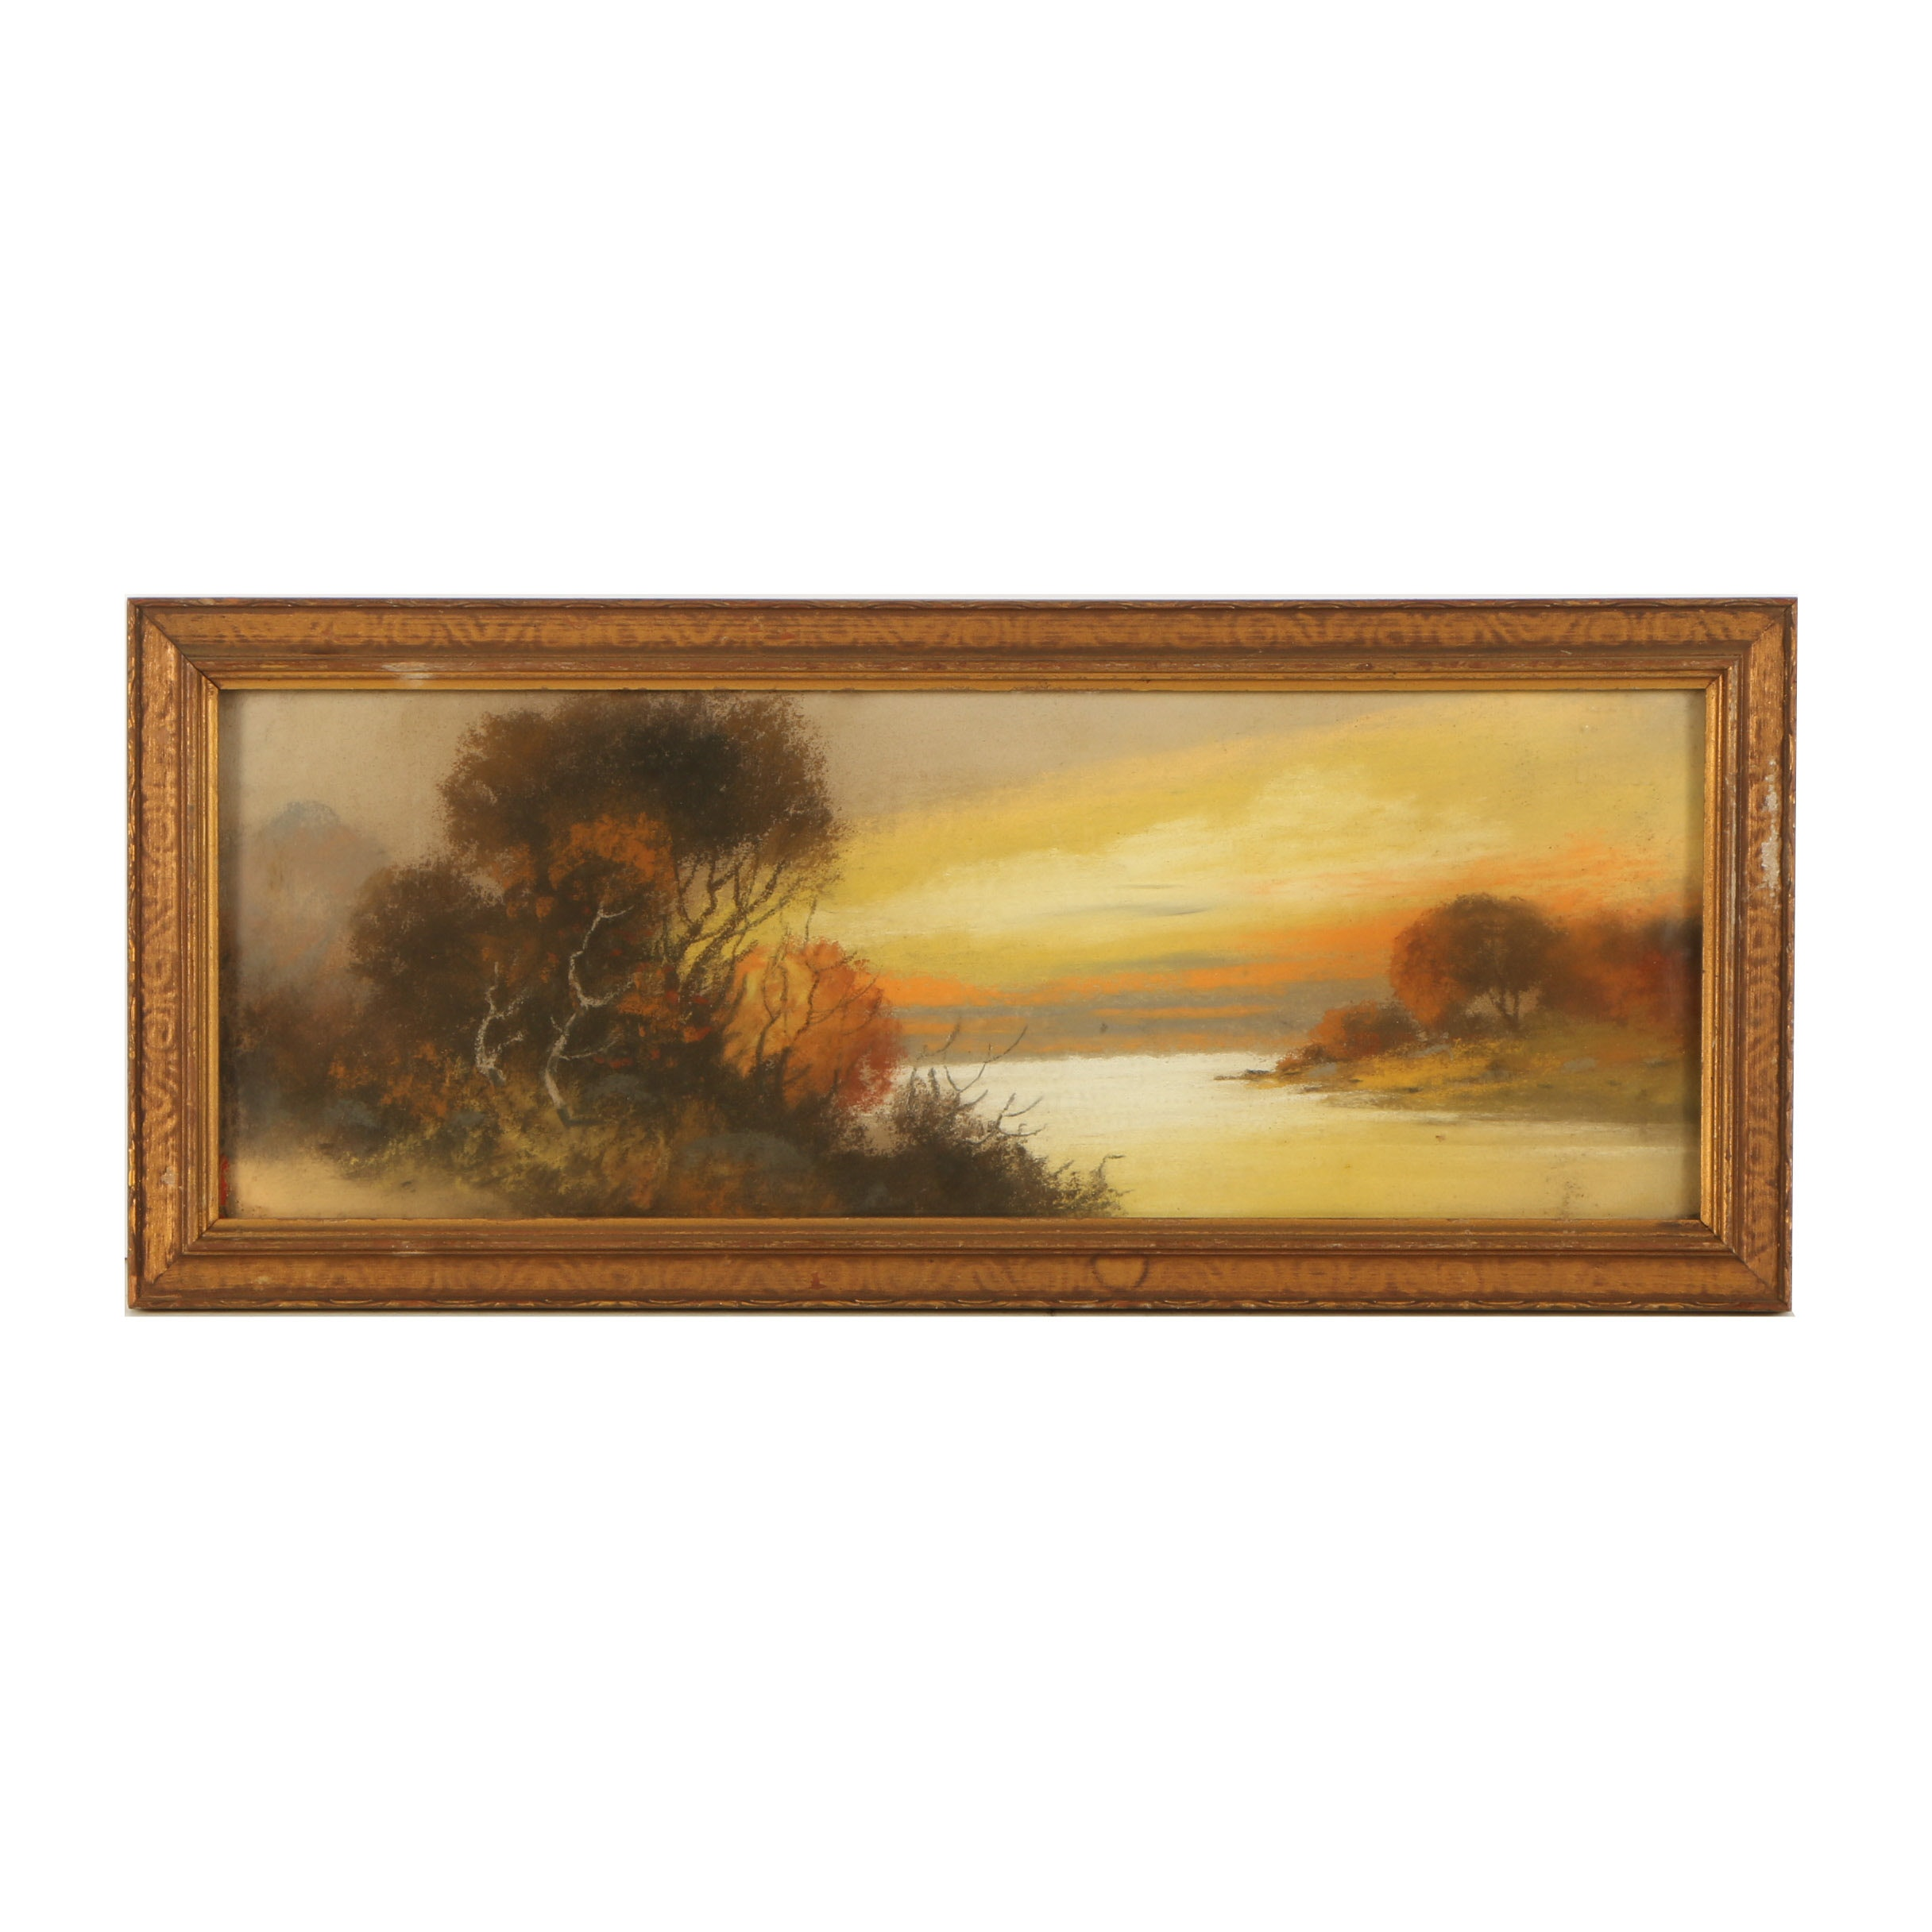 Pastel Drawing of a Landscape at Sunset